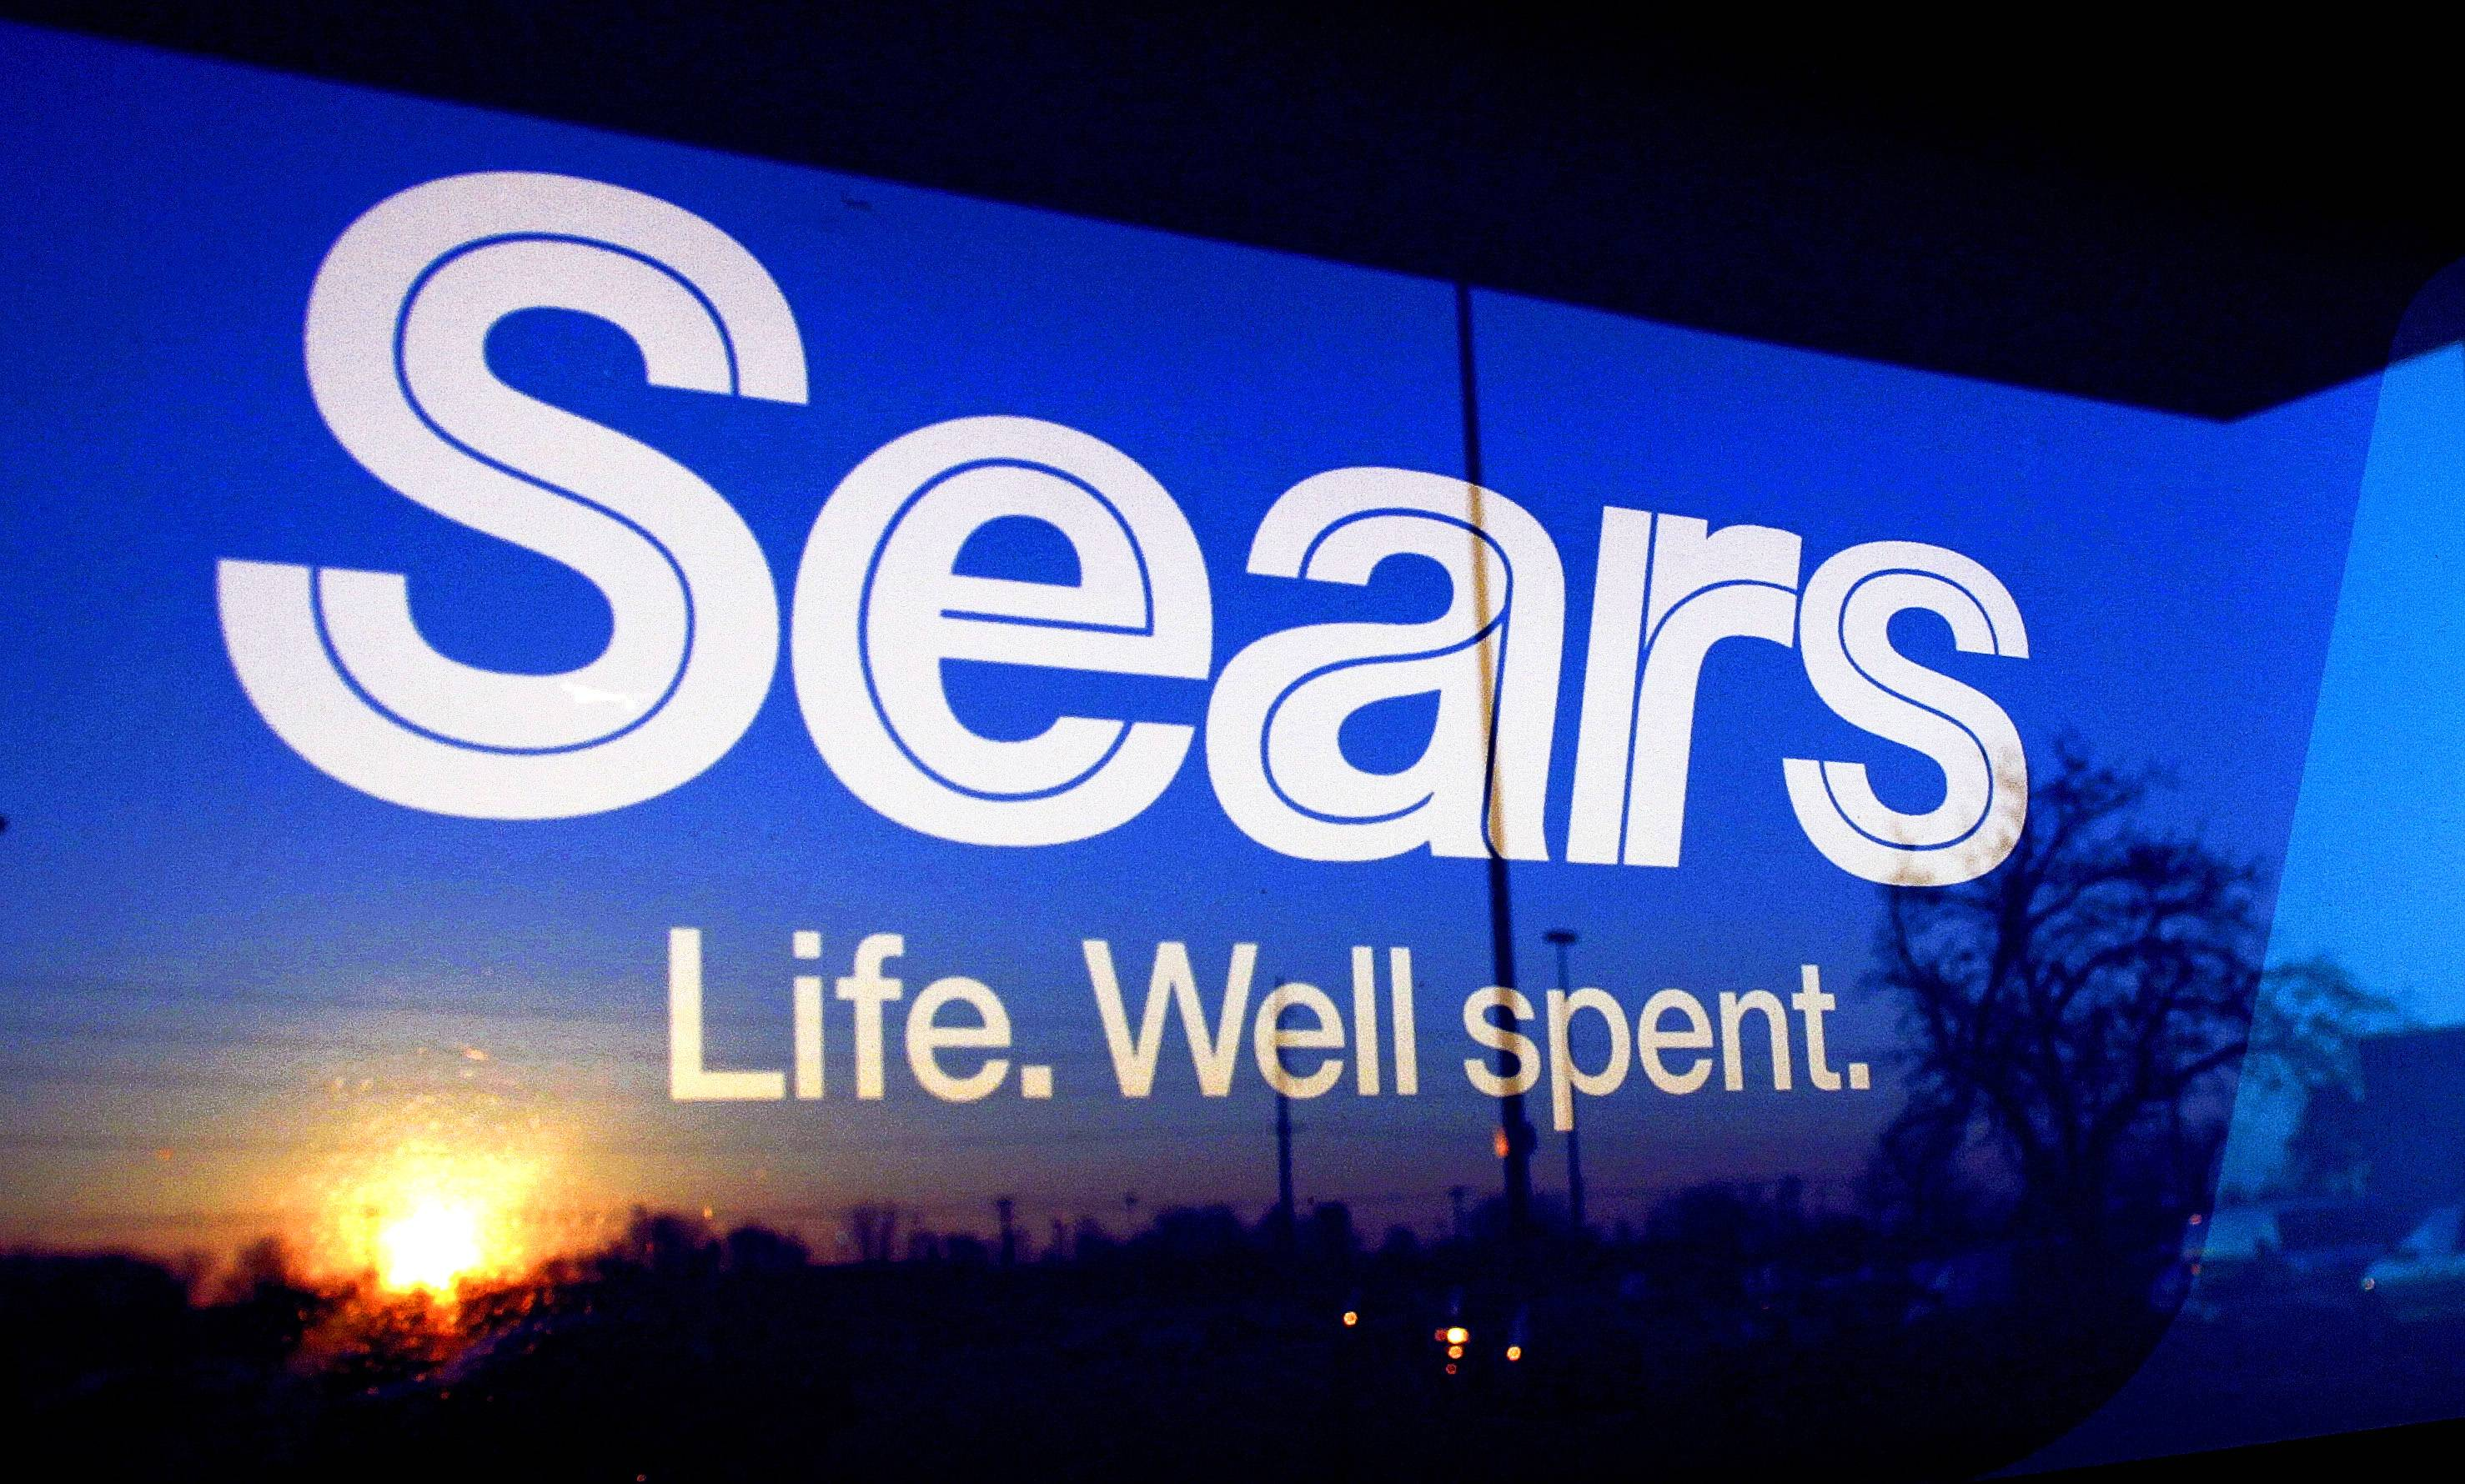 The setting sun is reflected on a window with the Sears logo, in Springfield, Ill. Sears may have suffered a cyber attack that breached the company's data systems.